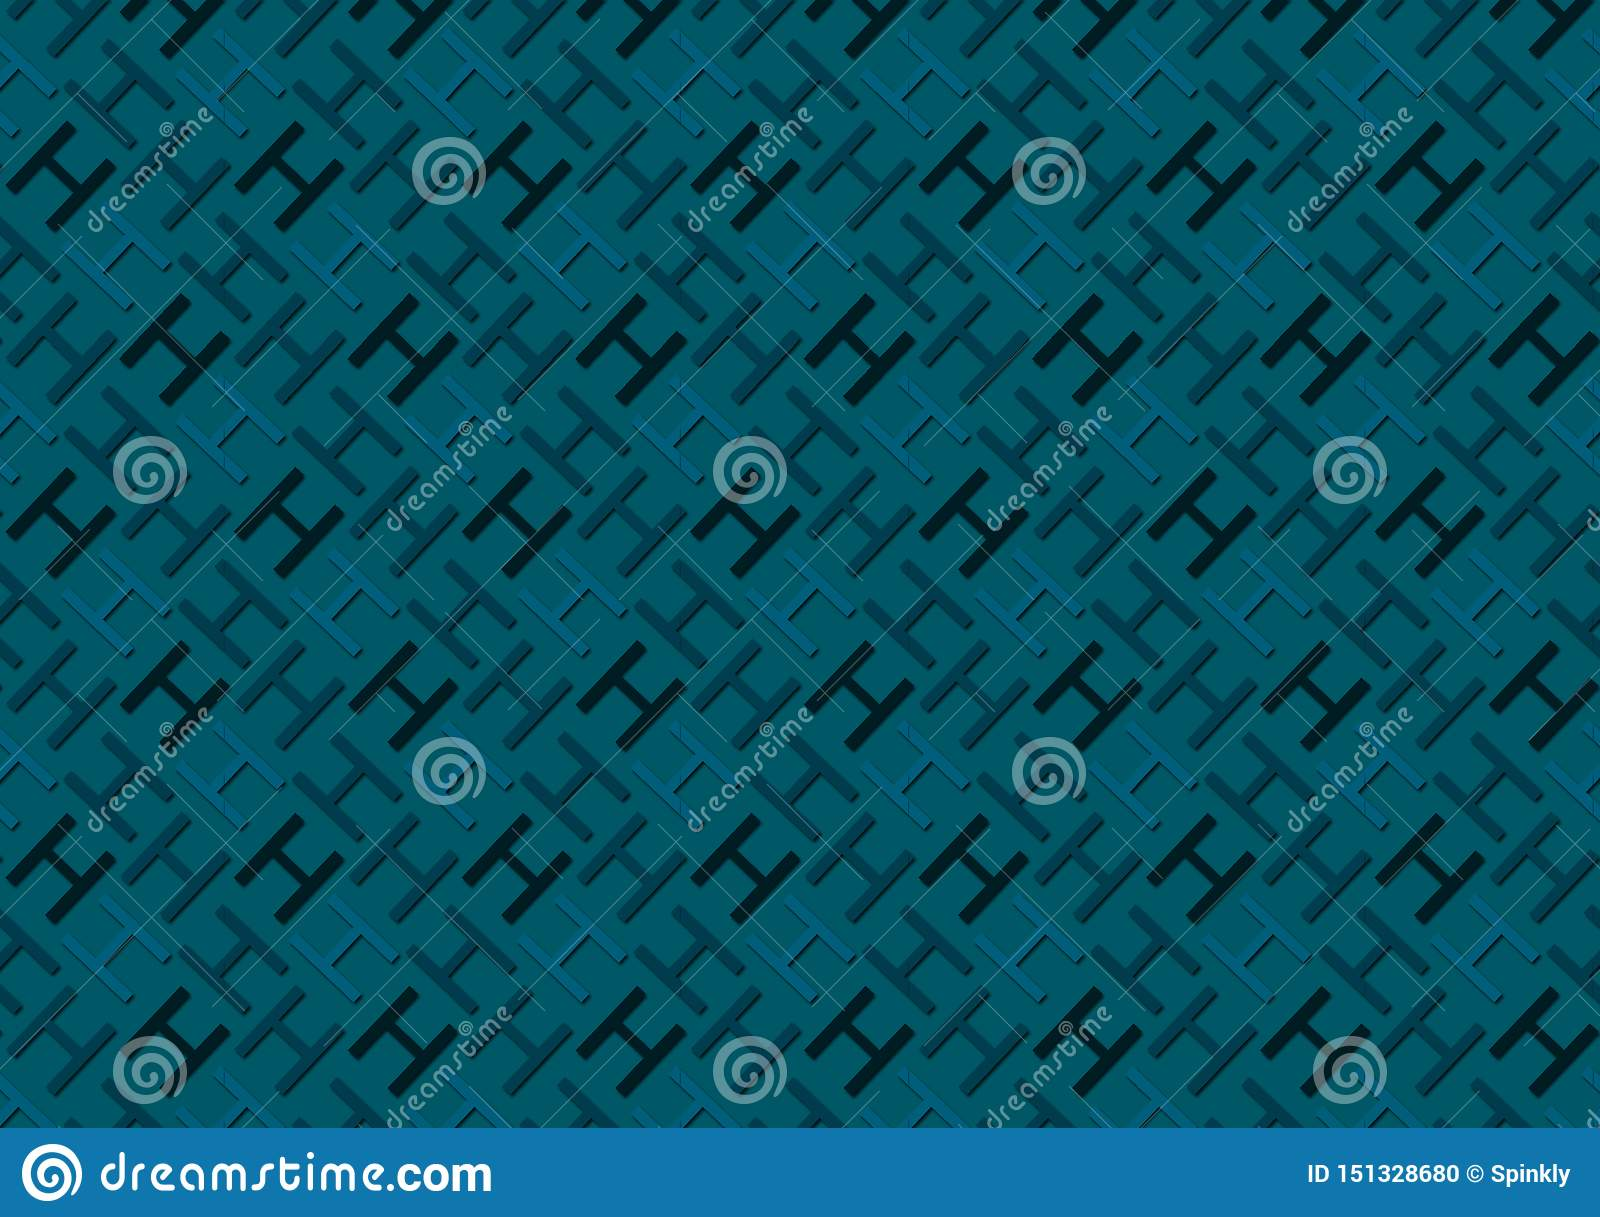 Letter H Pattern In Different Colored Blue Shades Wallpaper Stock Photo Image Of Size Plain 151328680